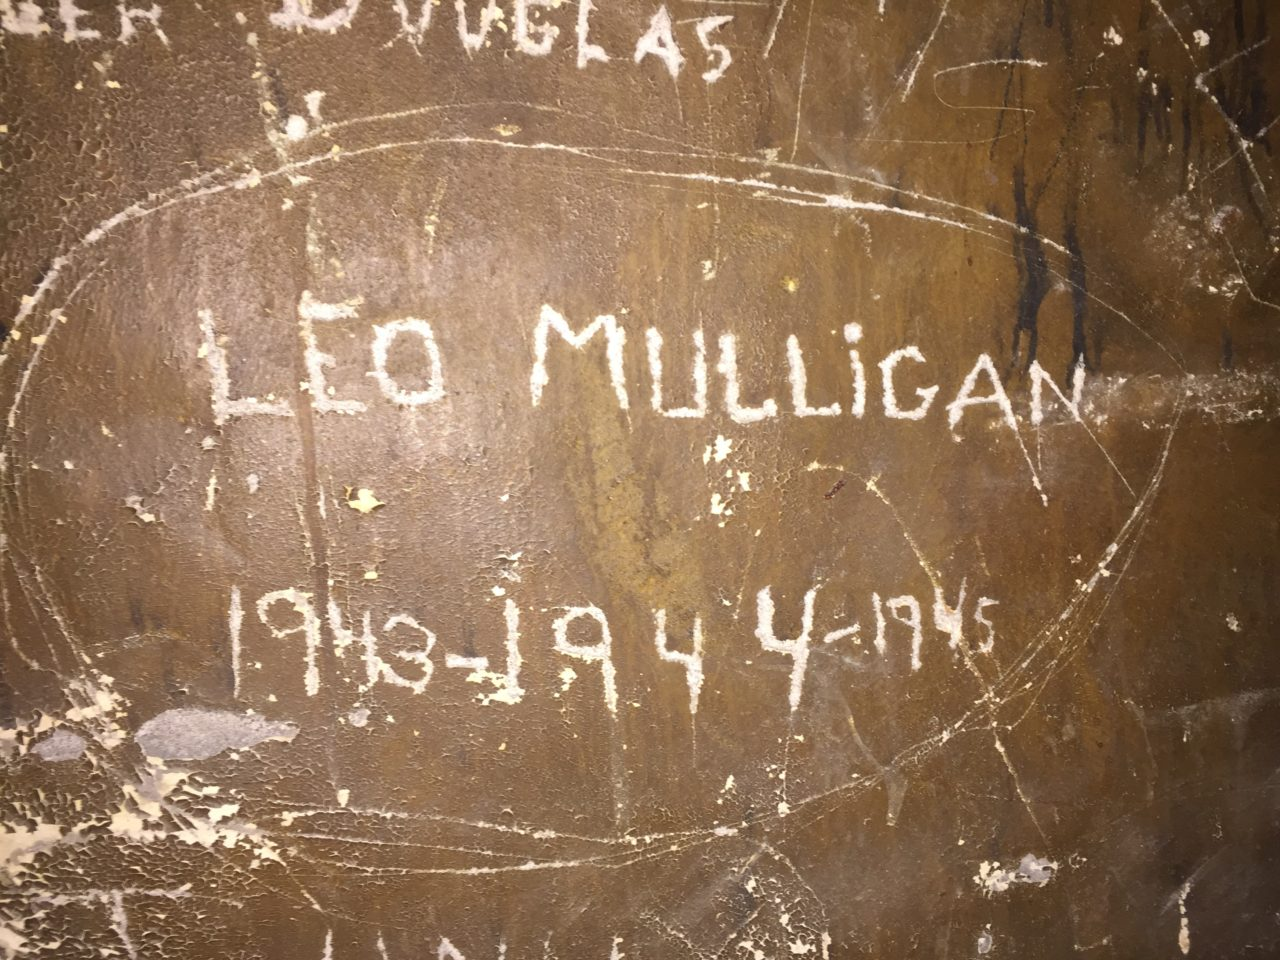 Graffiti from 1940s